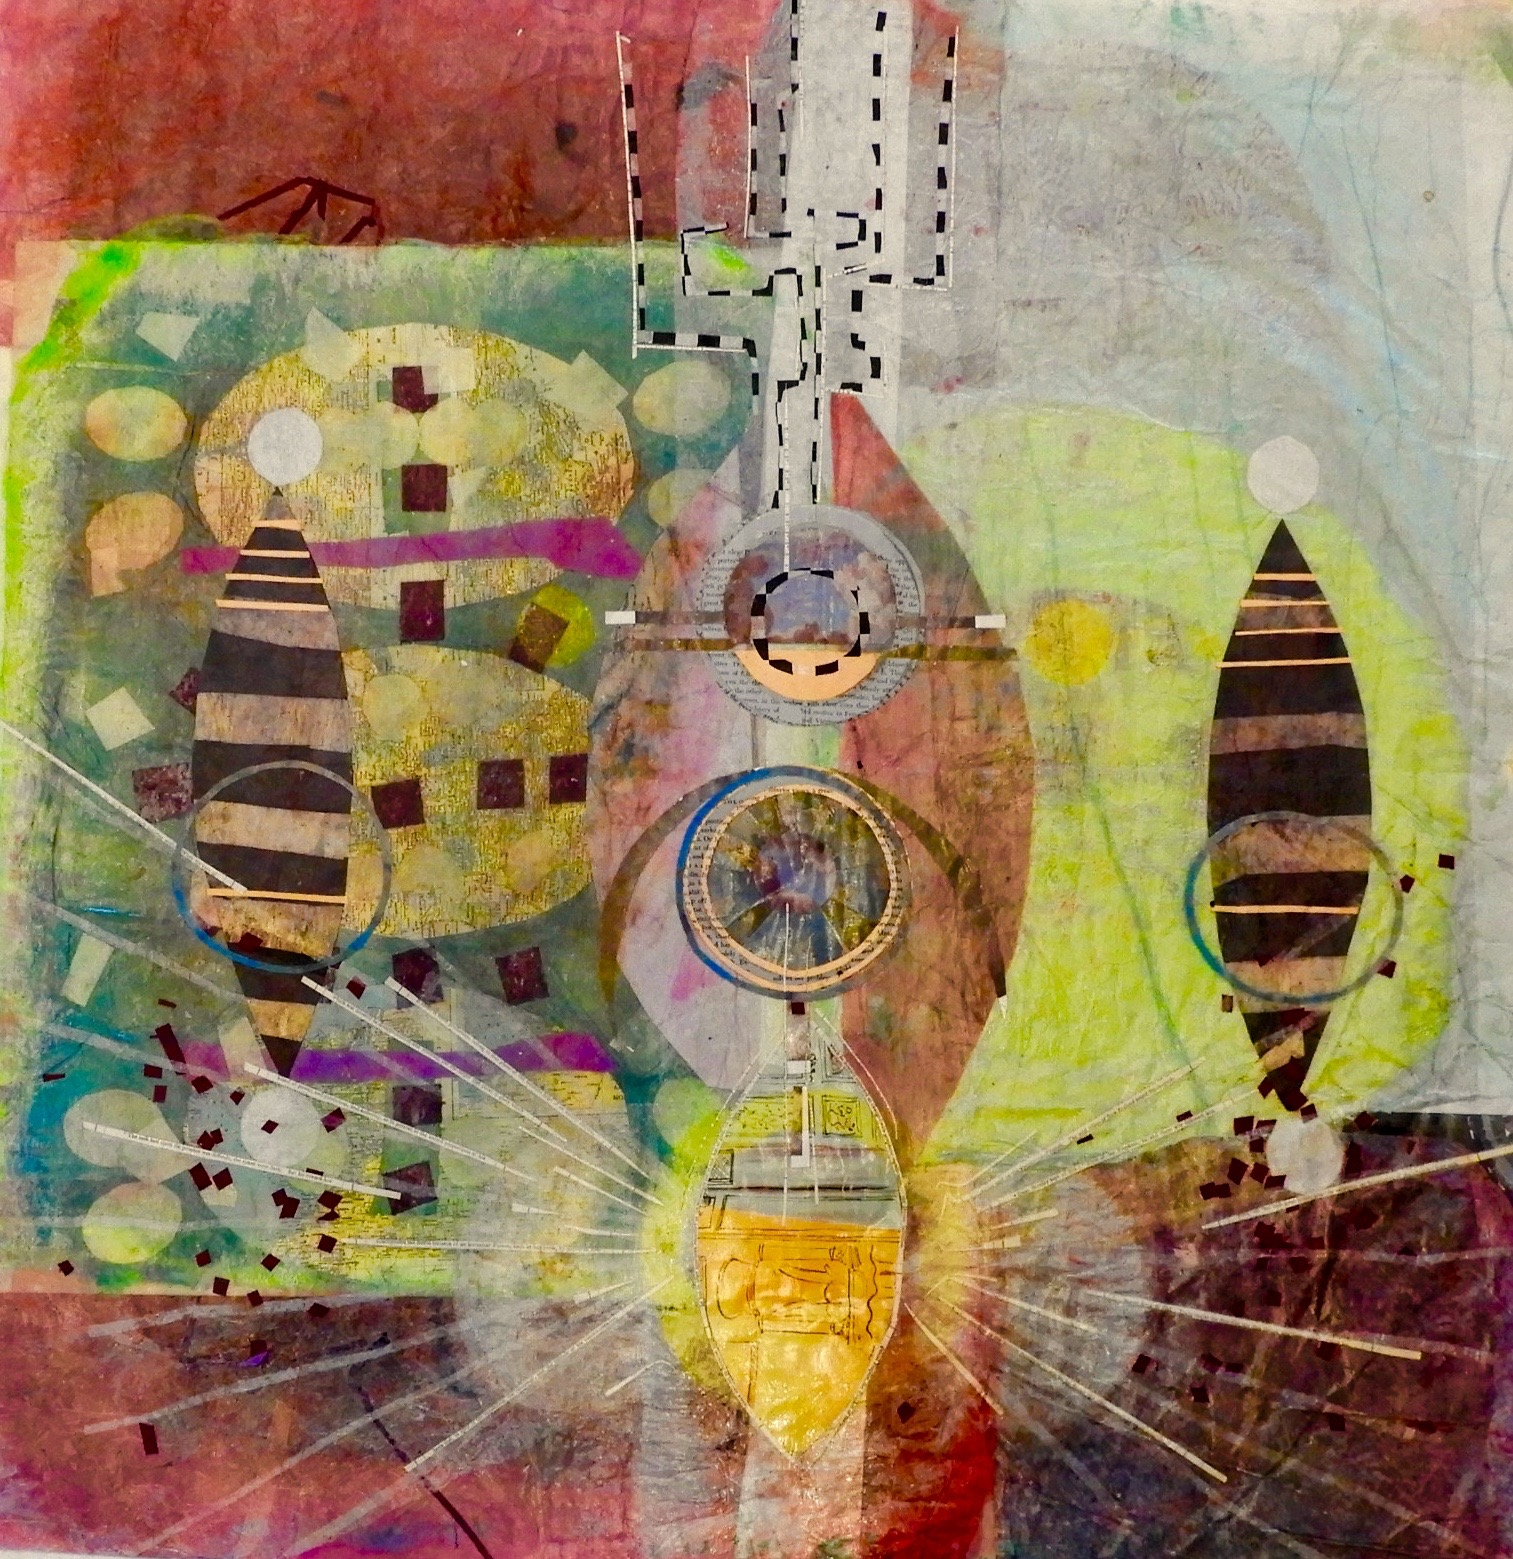 abstract-collage-art-devivolife-fish